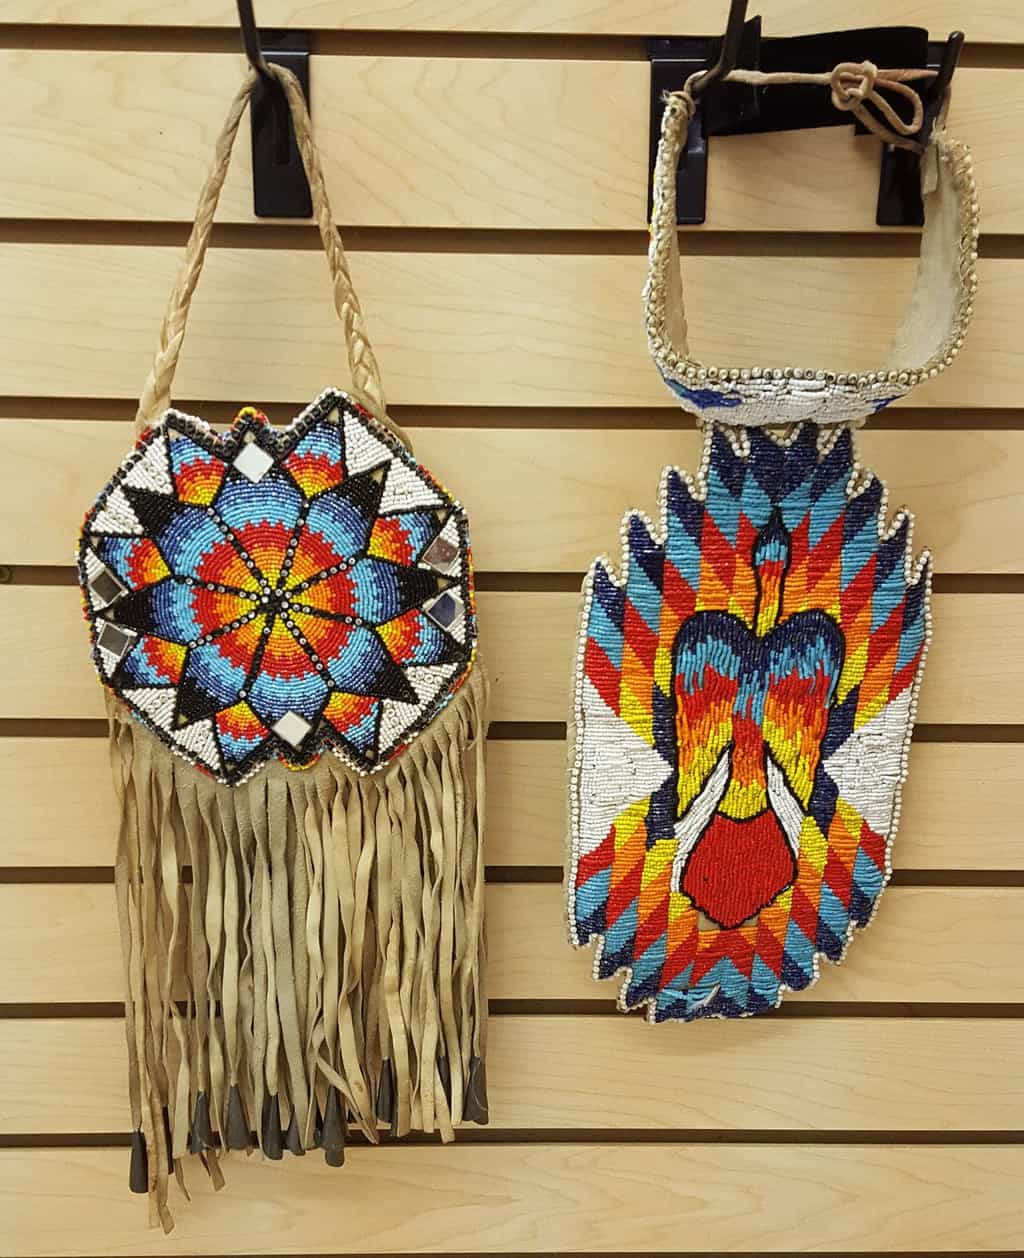 NICE HAND CRAFTED CUT BEADED NATIVE AMERICAN INDIAN CHOKER W/DROP AND PURSE SET – eBay find of the week - PowWows.com – Native American Pow Wows